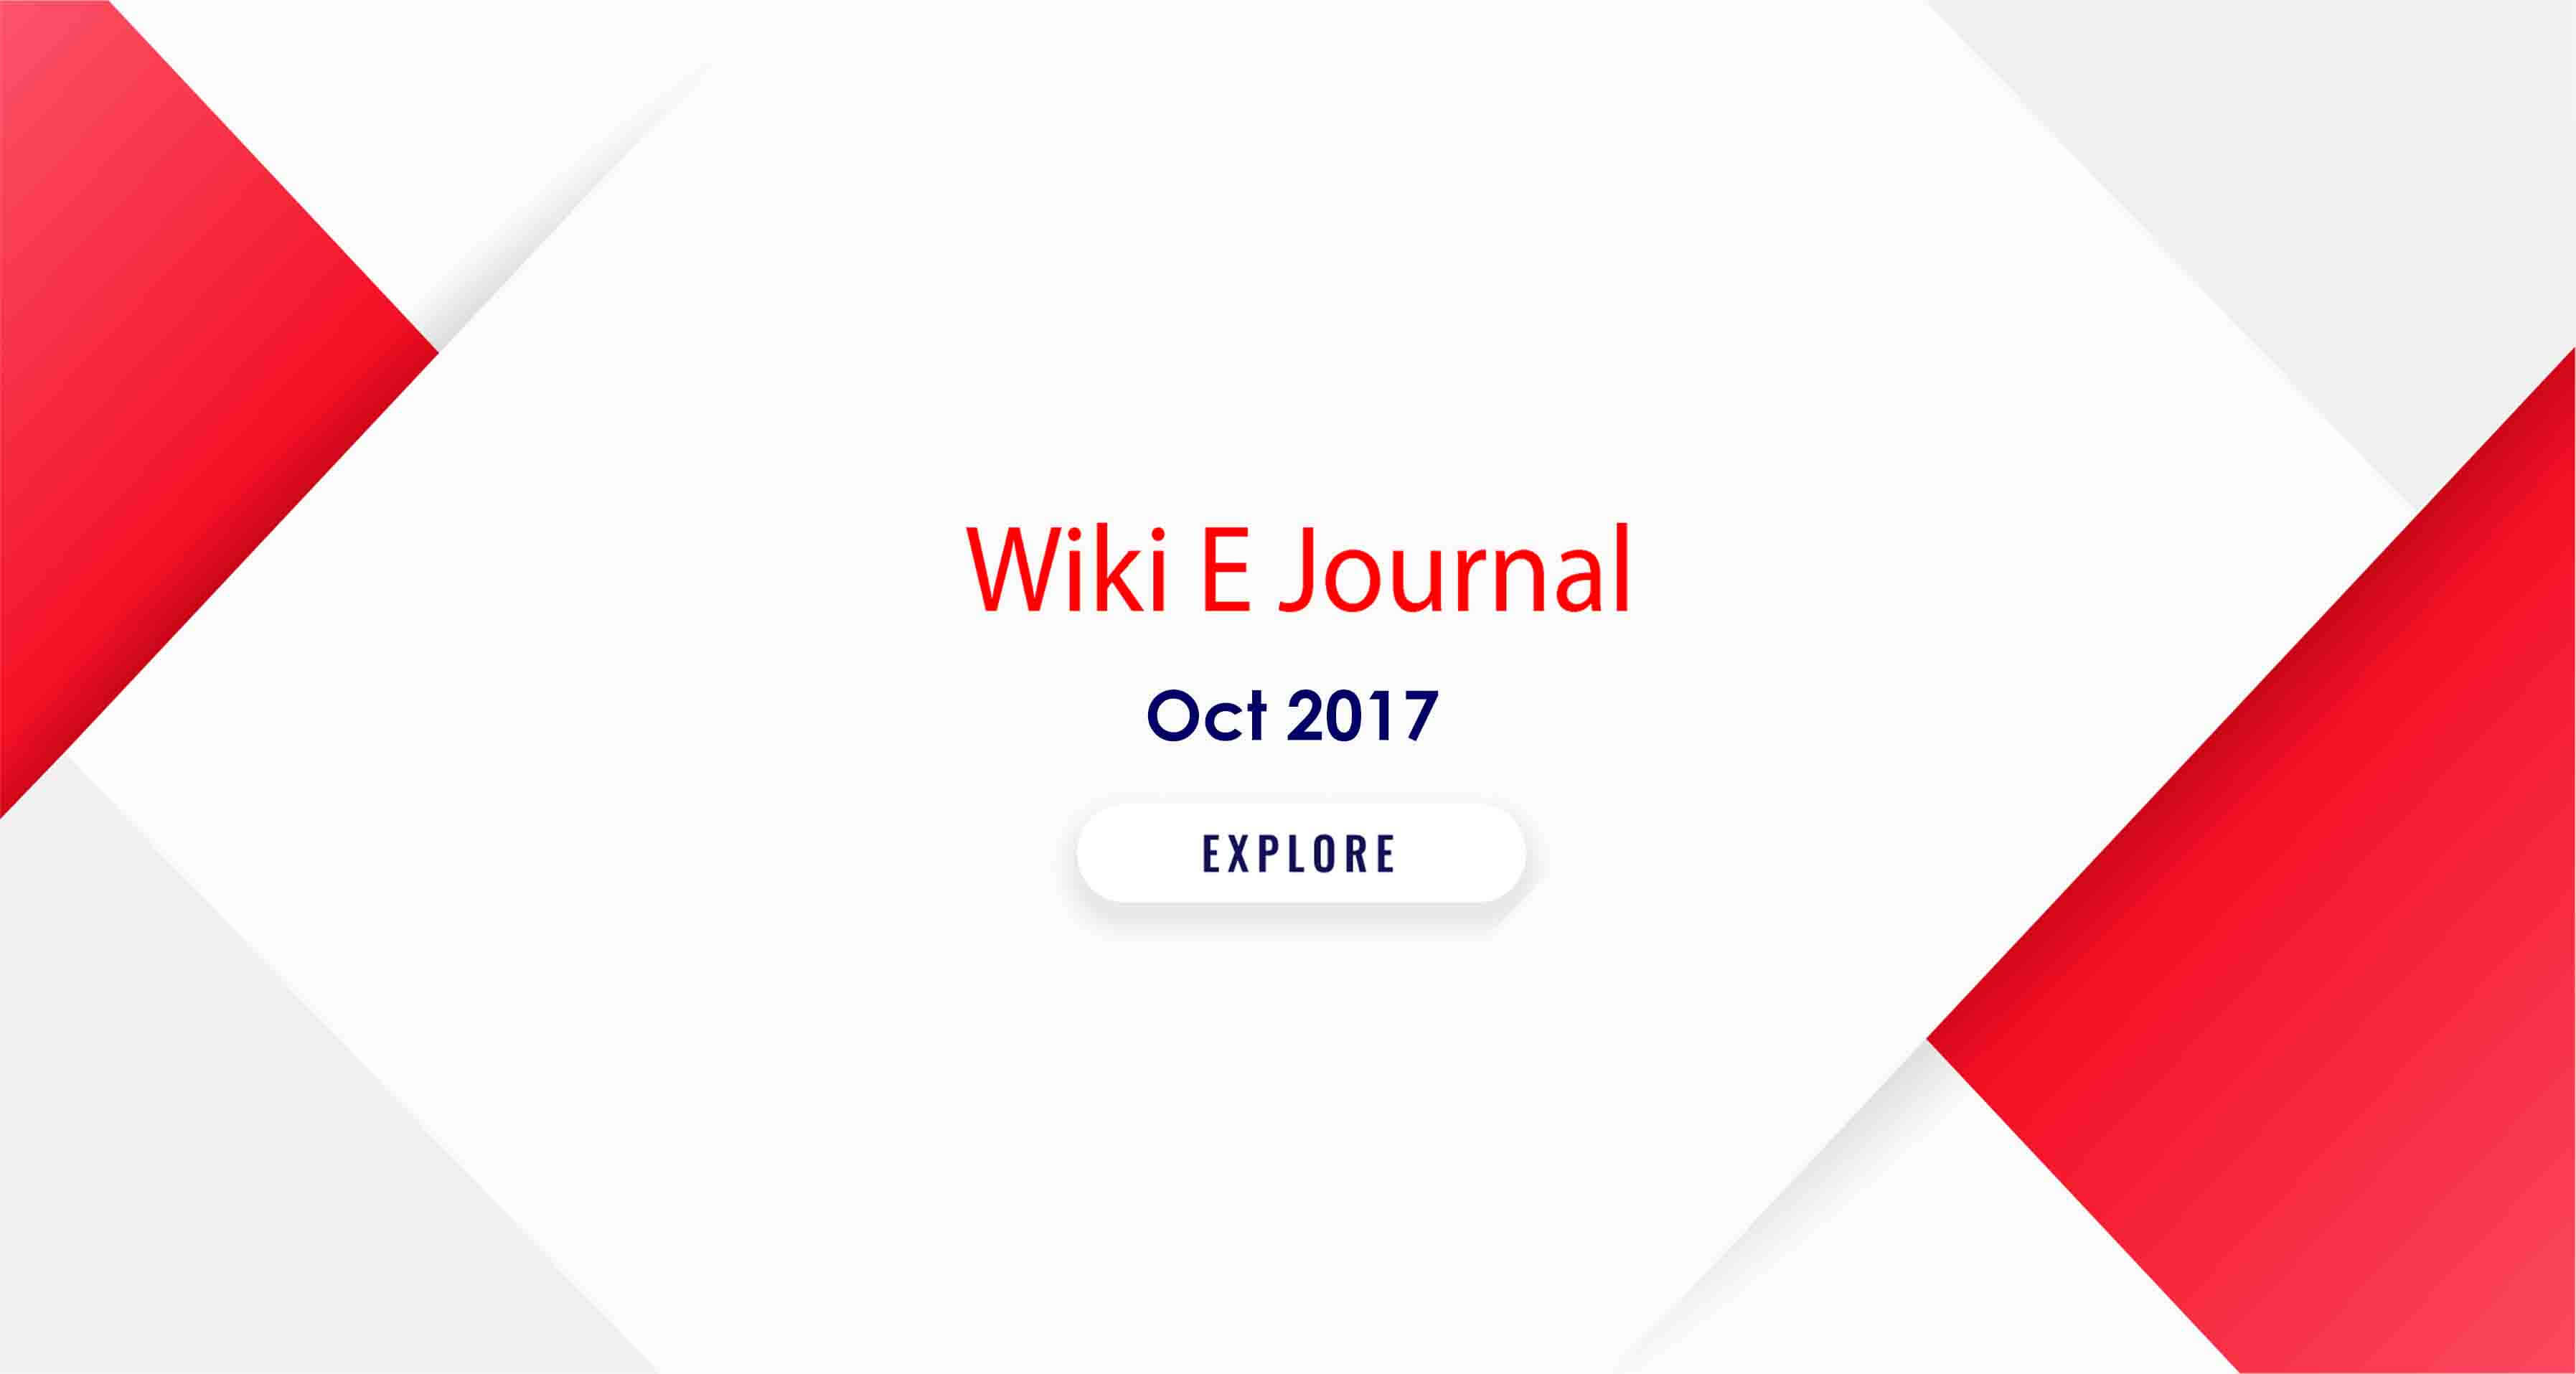 SBS WIKI E Journal Oct 2017